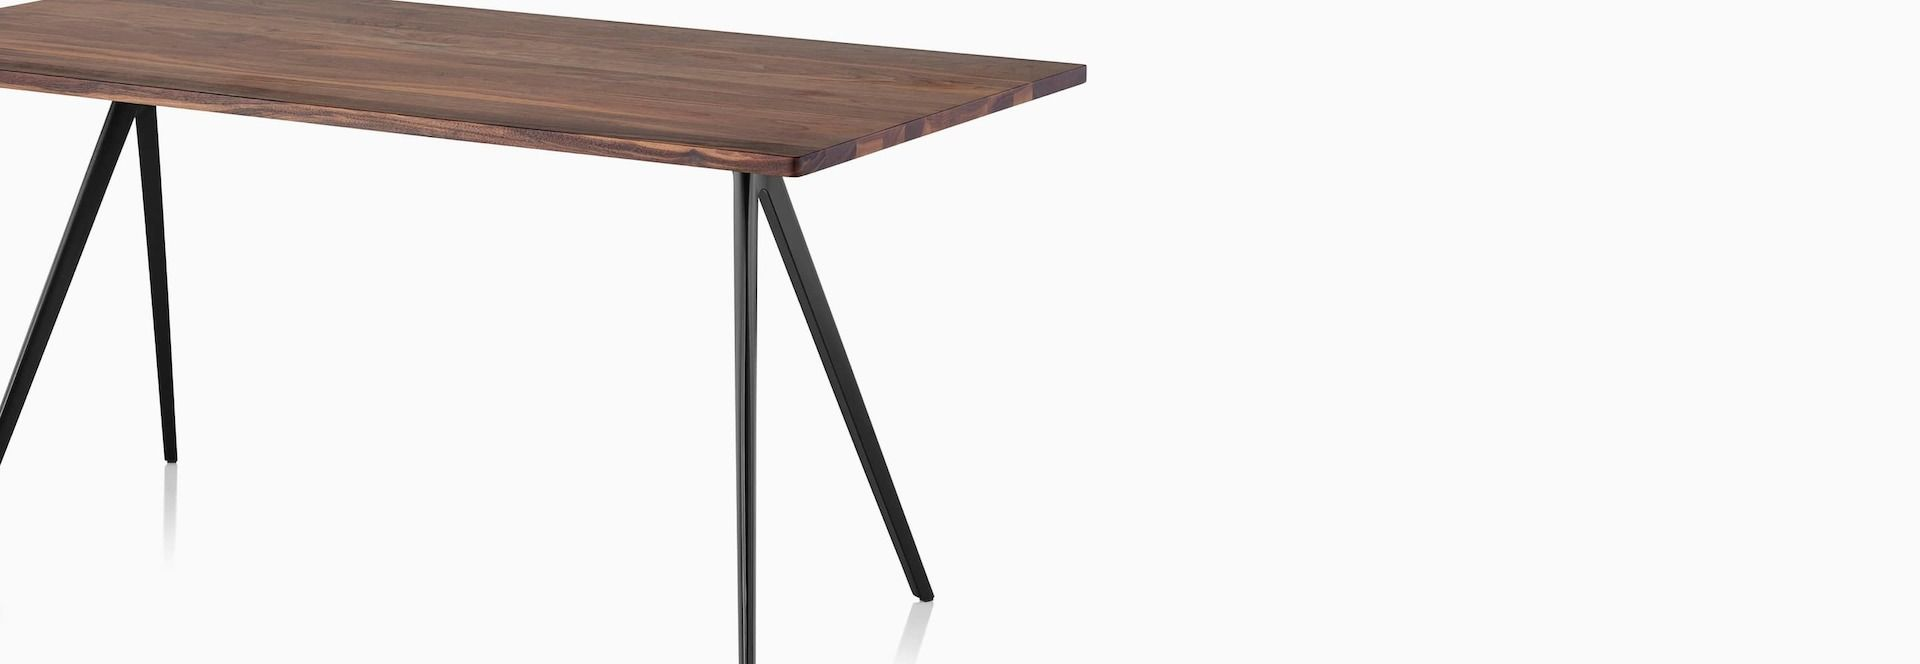 A Magis Baguette Table With A Medium Veneer Top And Black Legs